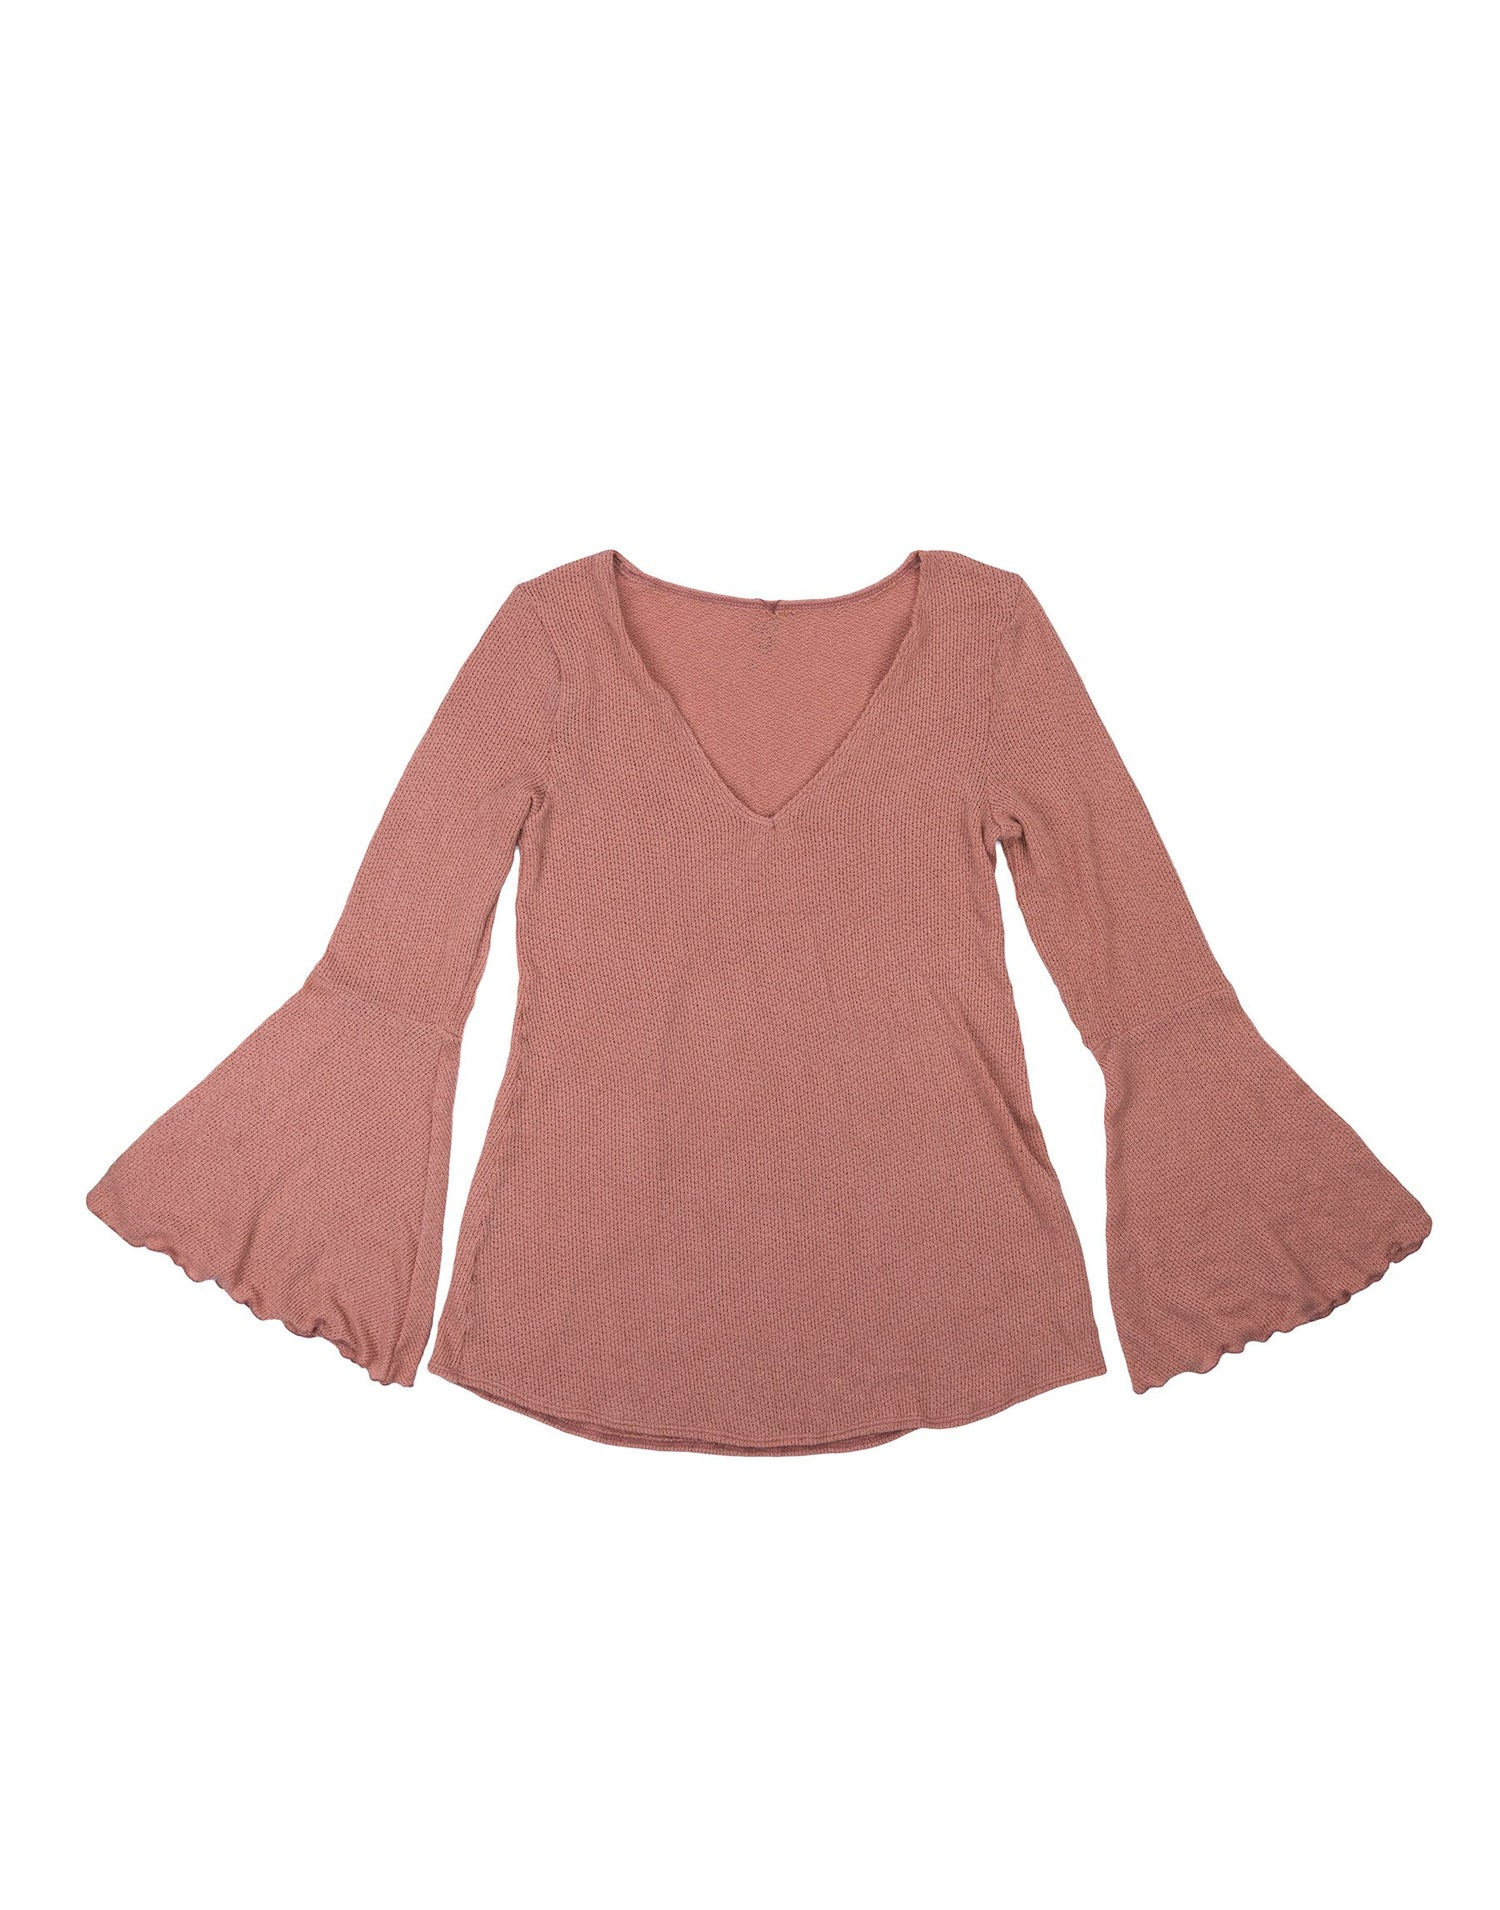 Annika Pink Long Bell Sleeved Top - product view